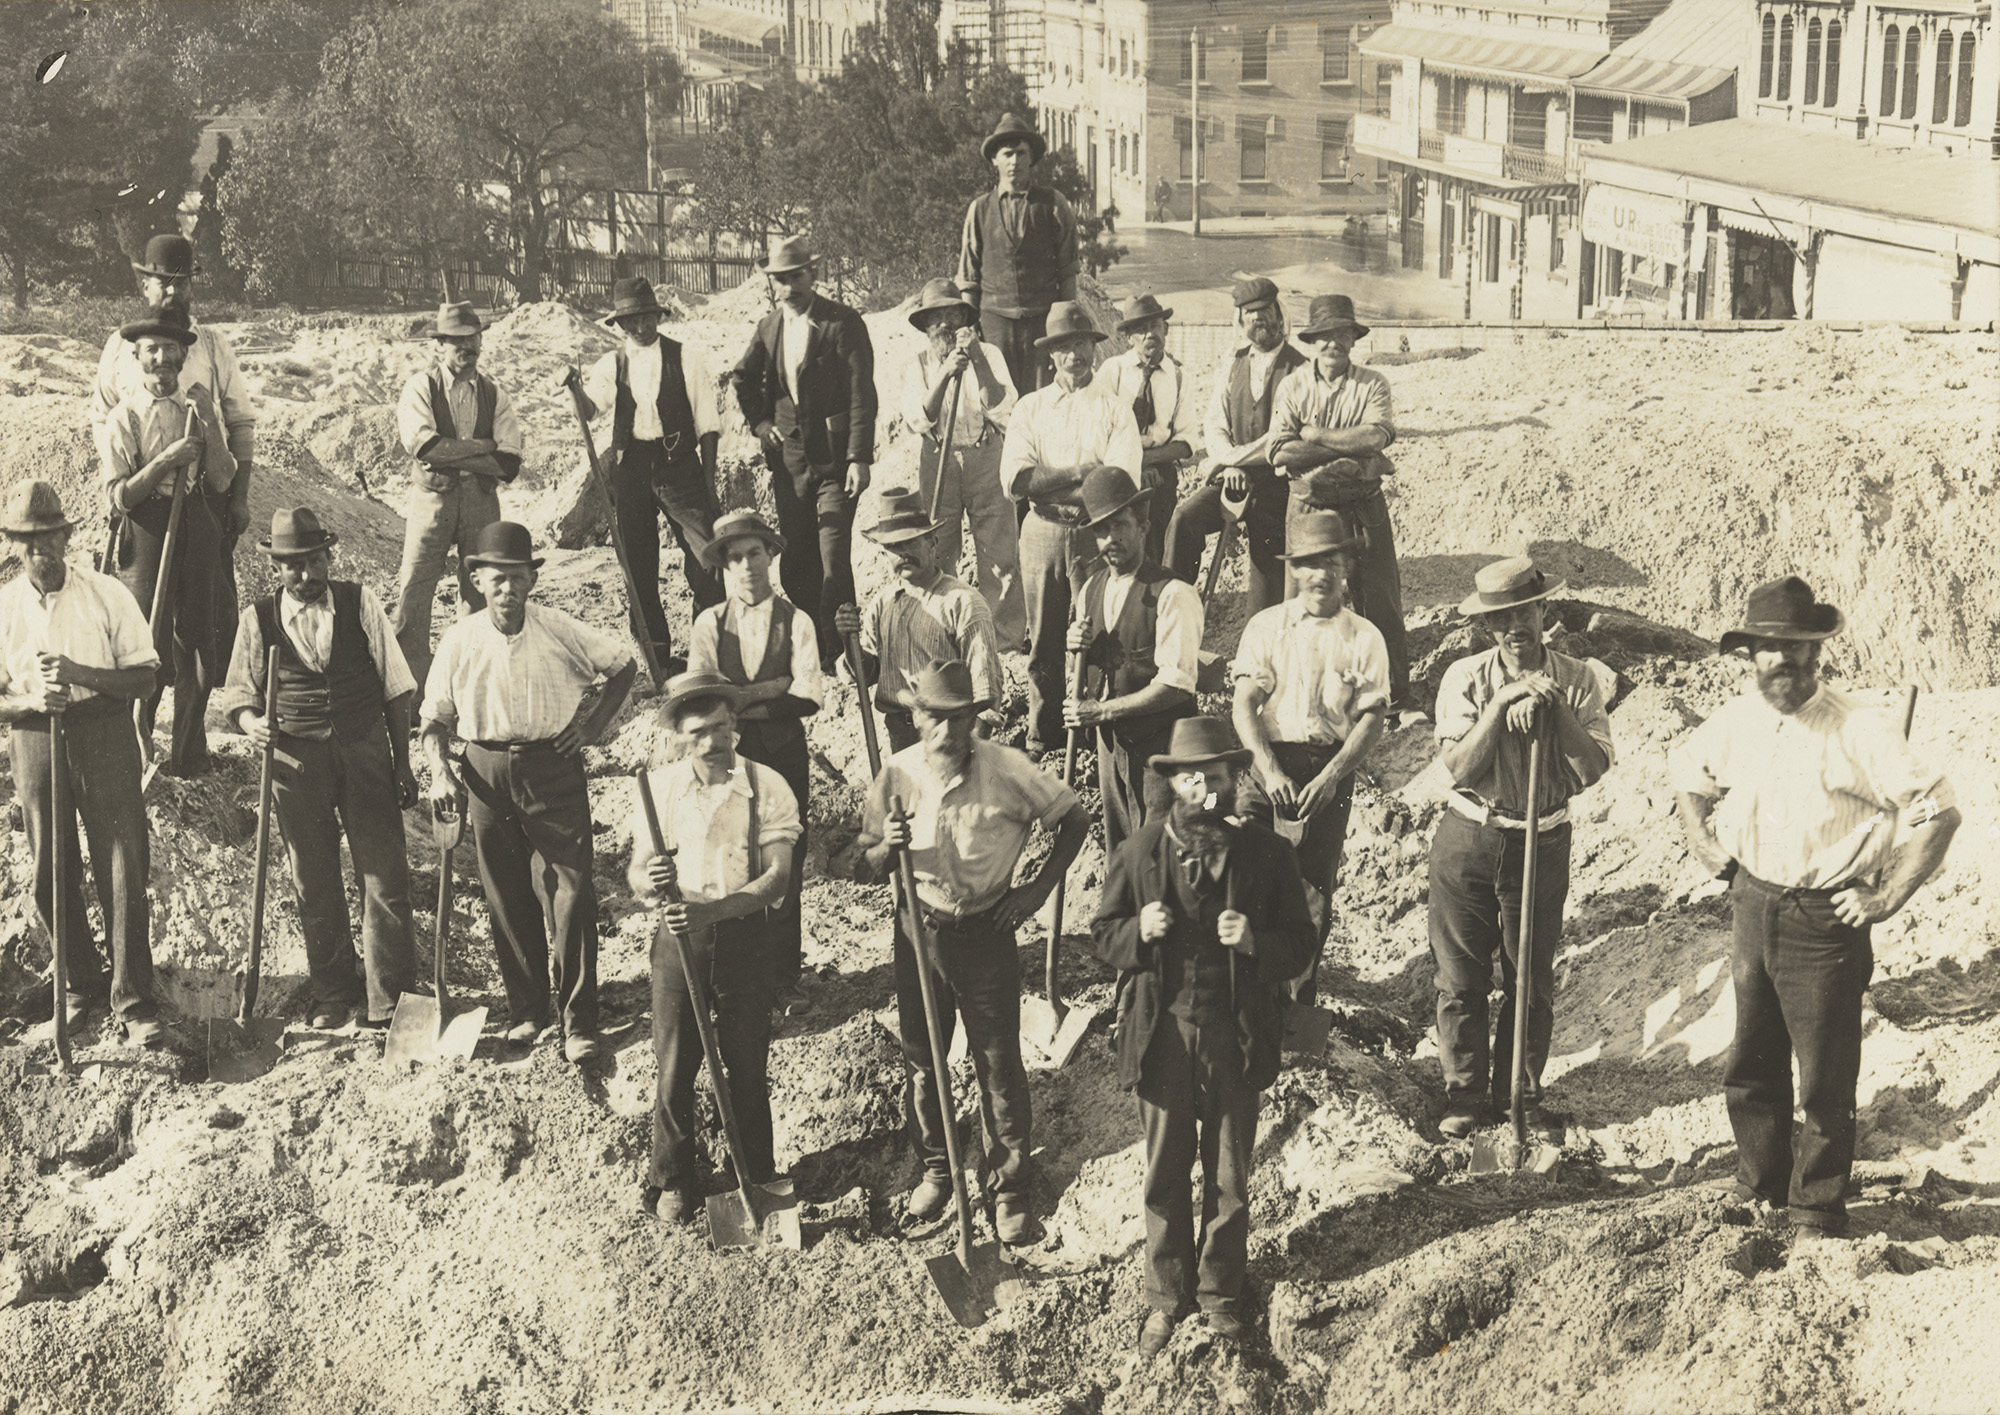 A sepia photograph of a group of workers, standing facing the camera, shovels in hand - they wear trousers, button up shirts and suspenders.